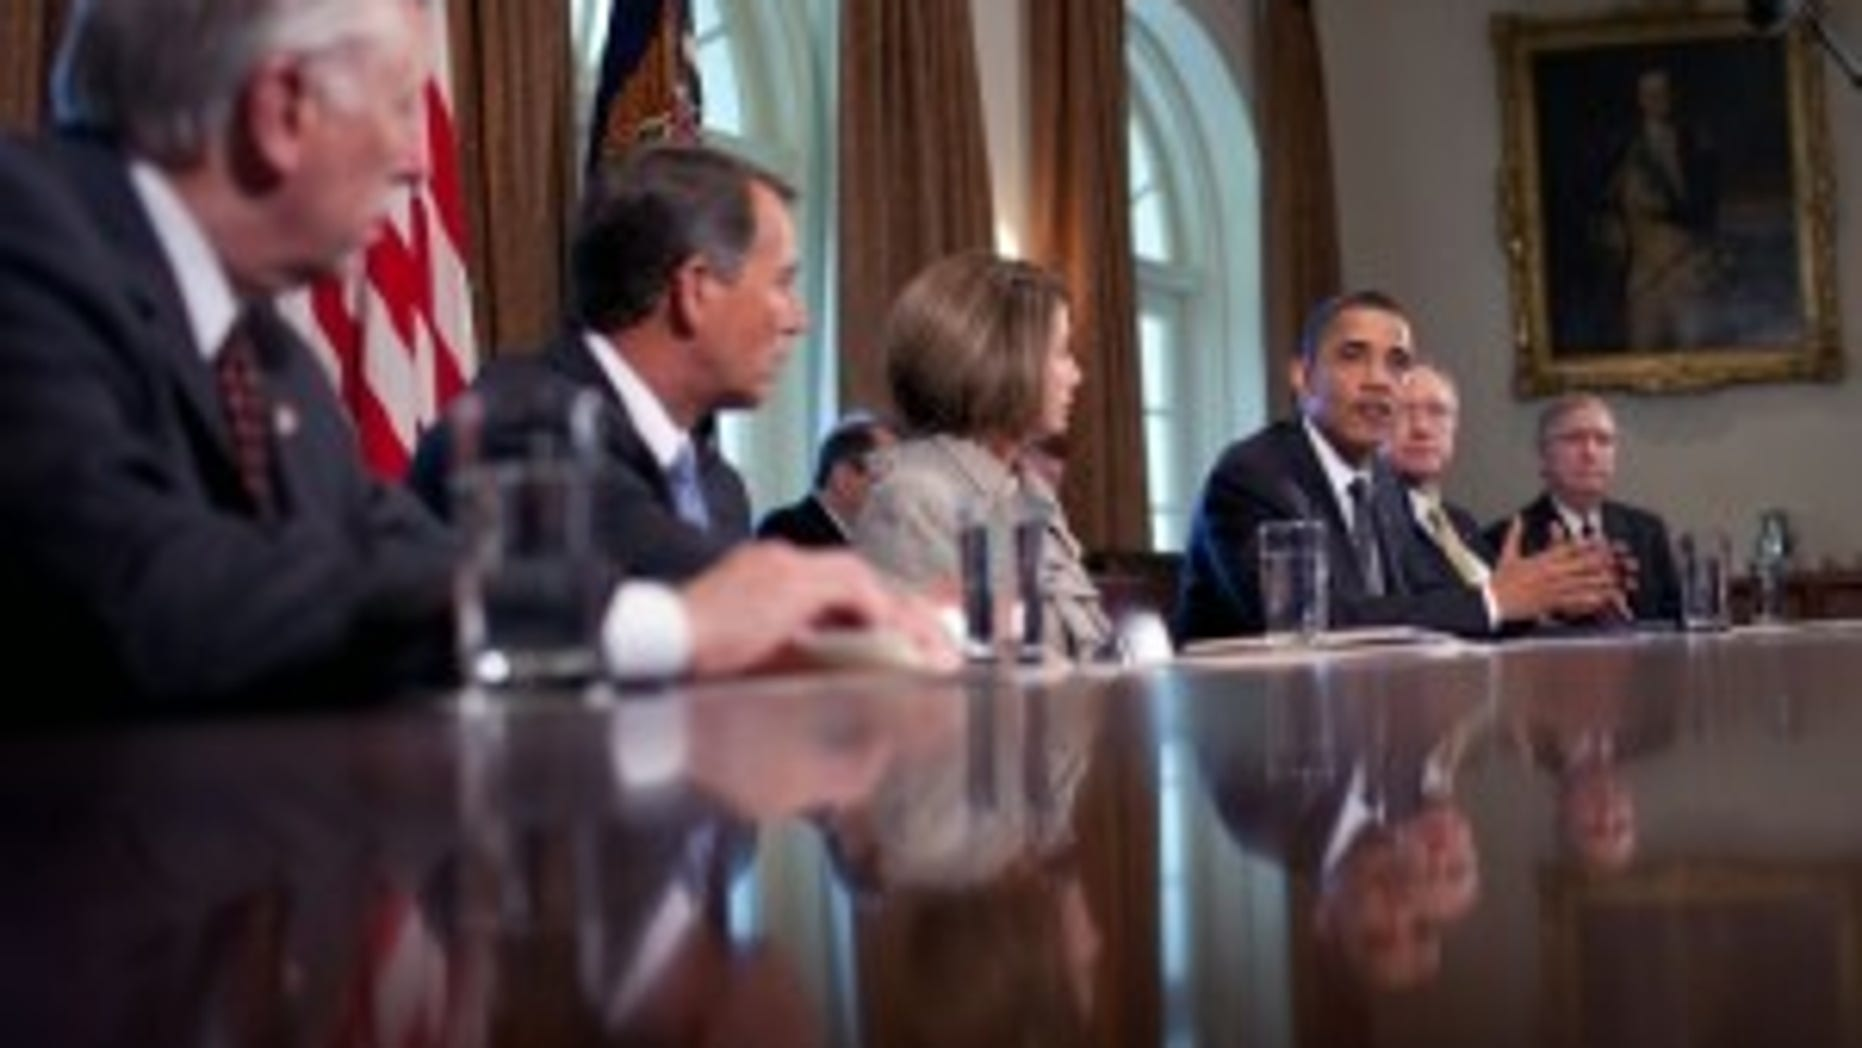 President Barack Obama meets with Congressional leaders in the Cabinet Room of the White House to discuss Wall Street reform. From left, Rep. Steny Hoyer, D-Md, Rep. John Boehner, R-Ohio, House Speaker Nancy Pelosi, D-Calif., the President, Senate Majority Leader Harry Reid, D-Nev., and Sen. Mitch McConnell, R-Ky. April 14, 2010. (Official White House Photo by Chuck Kennedy)